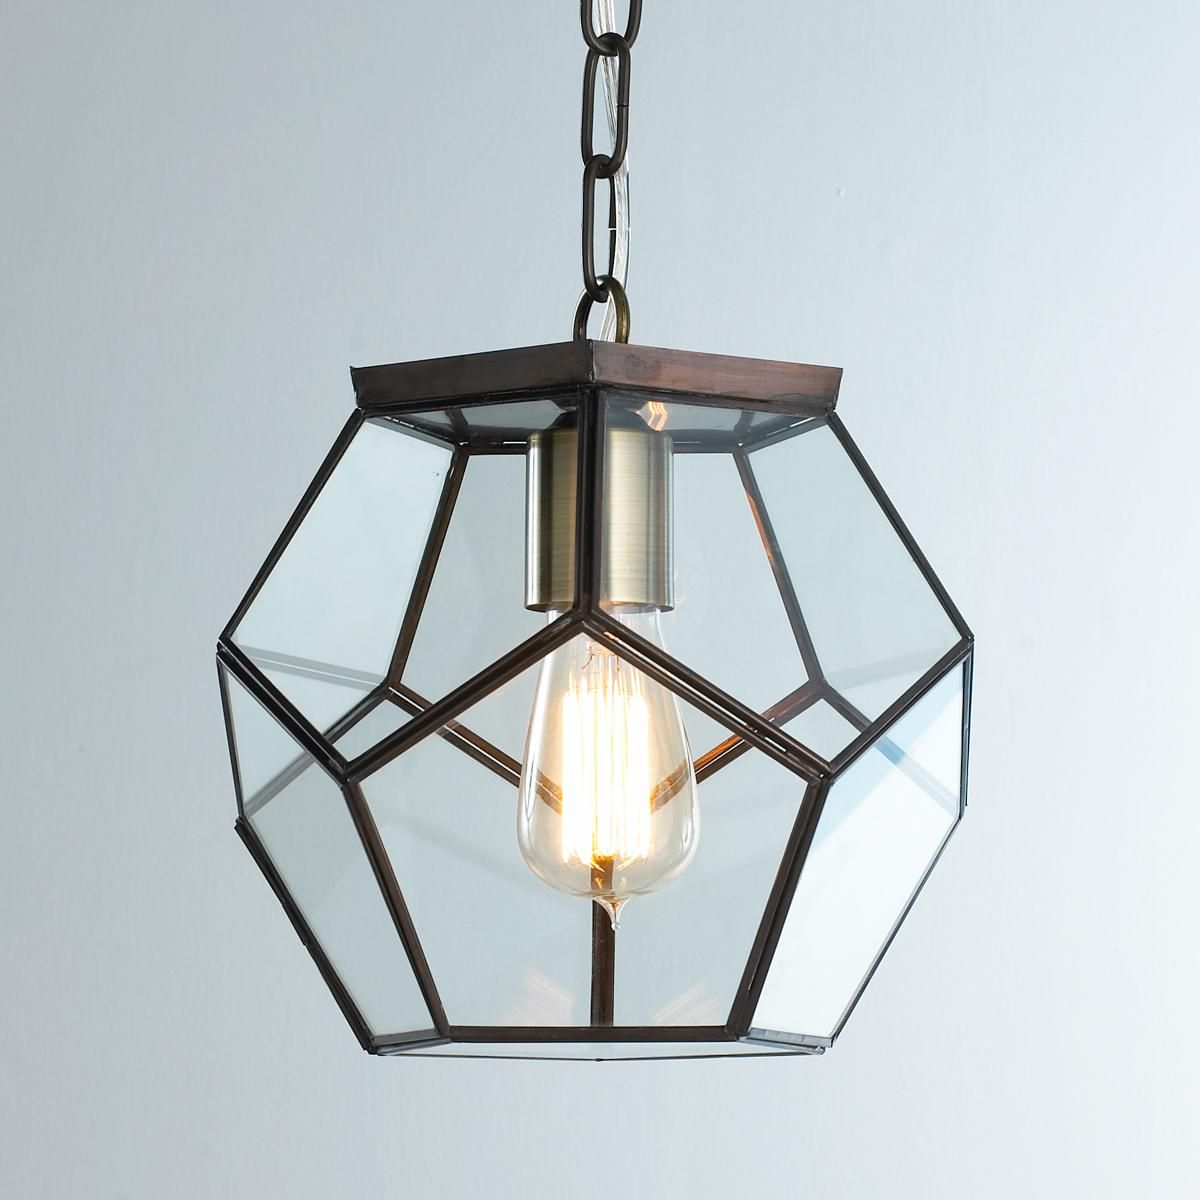 Clear Glass Prism Pentagon Pendant Light Geometric Panels Of Create Eye Catching Style From The Kitchen To Potting Shed